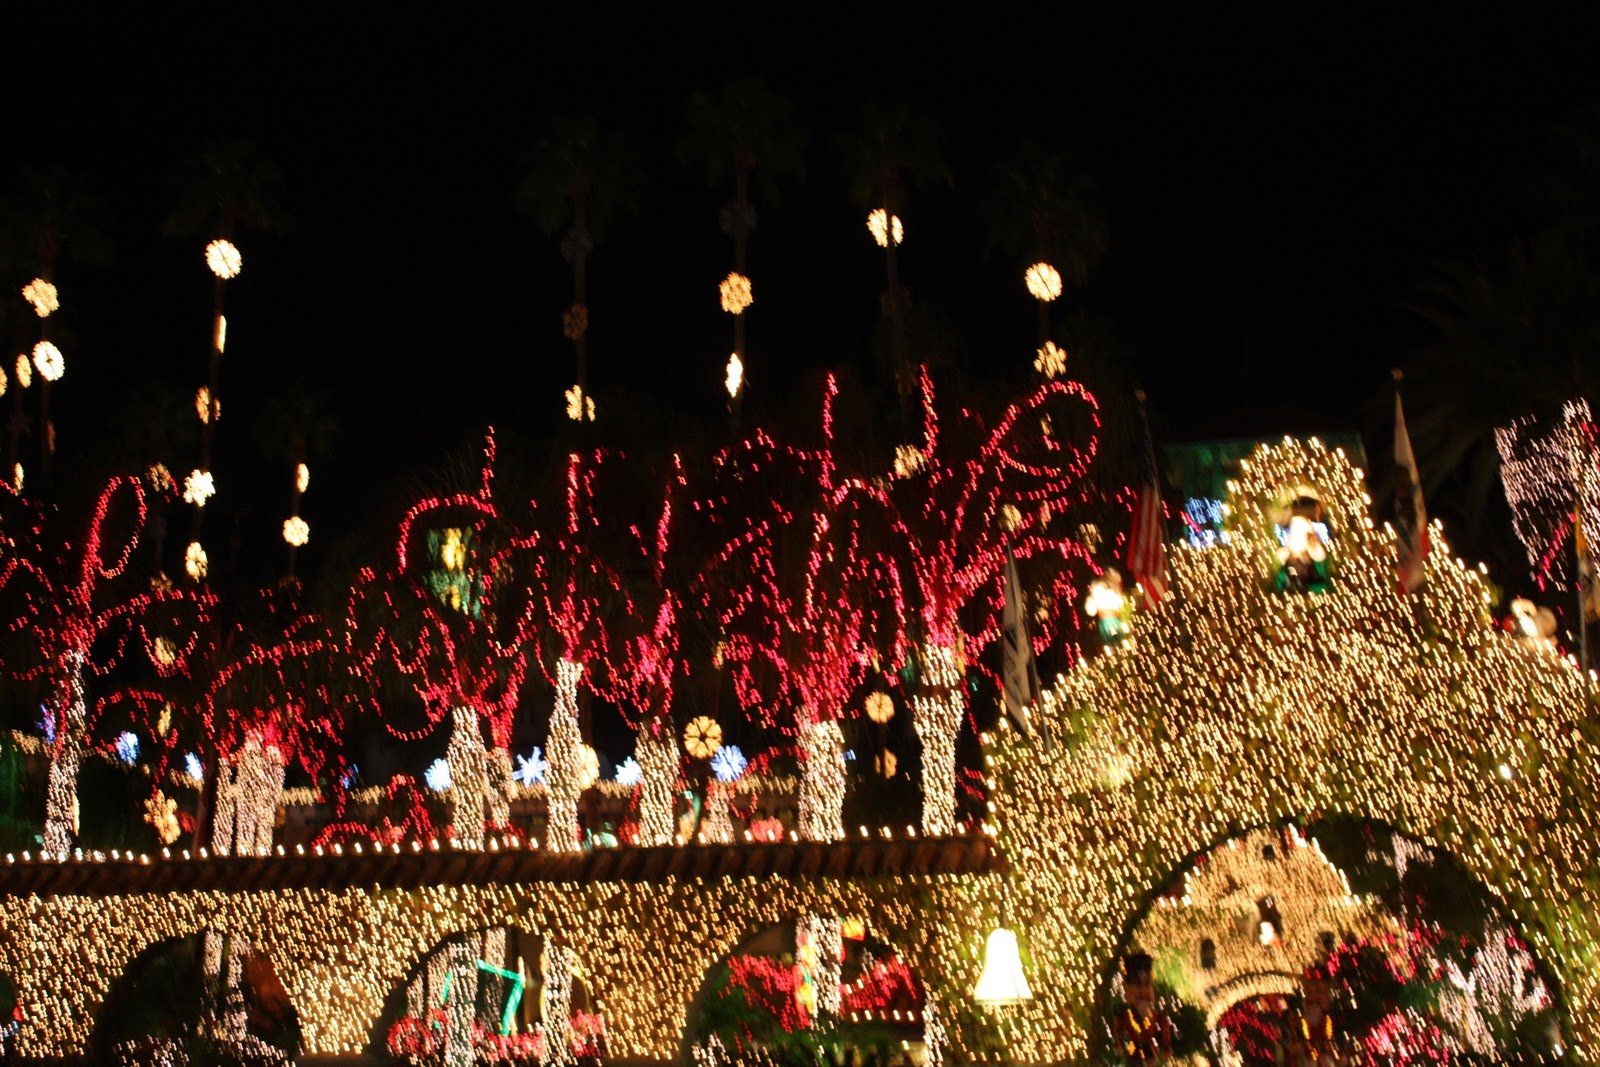 ... to the Mission Inn for their Festival of Lights. It was amazing all of the work that was put into hanging over thousands of lights. & JEN JIMENEZ: Festival of Lights Mission Inn Riverside azcodes.com